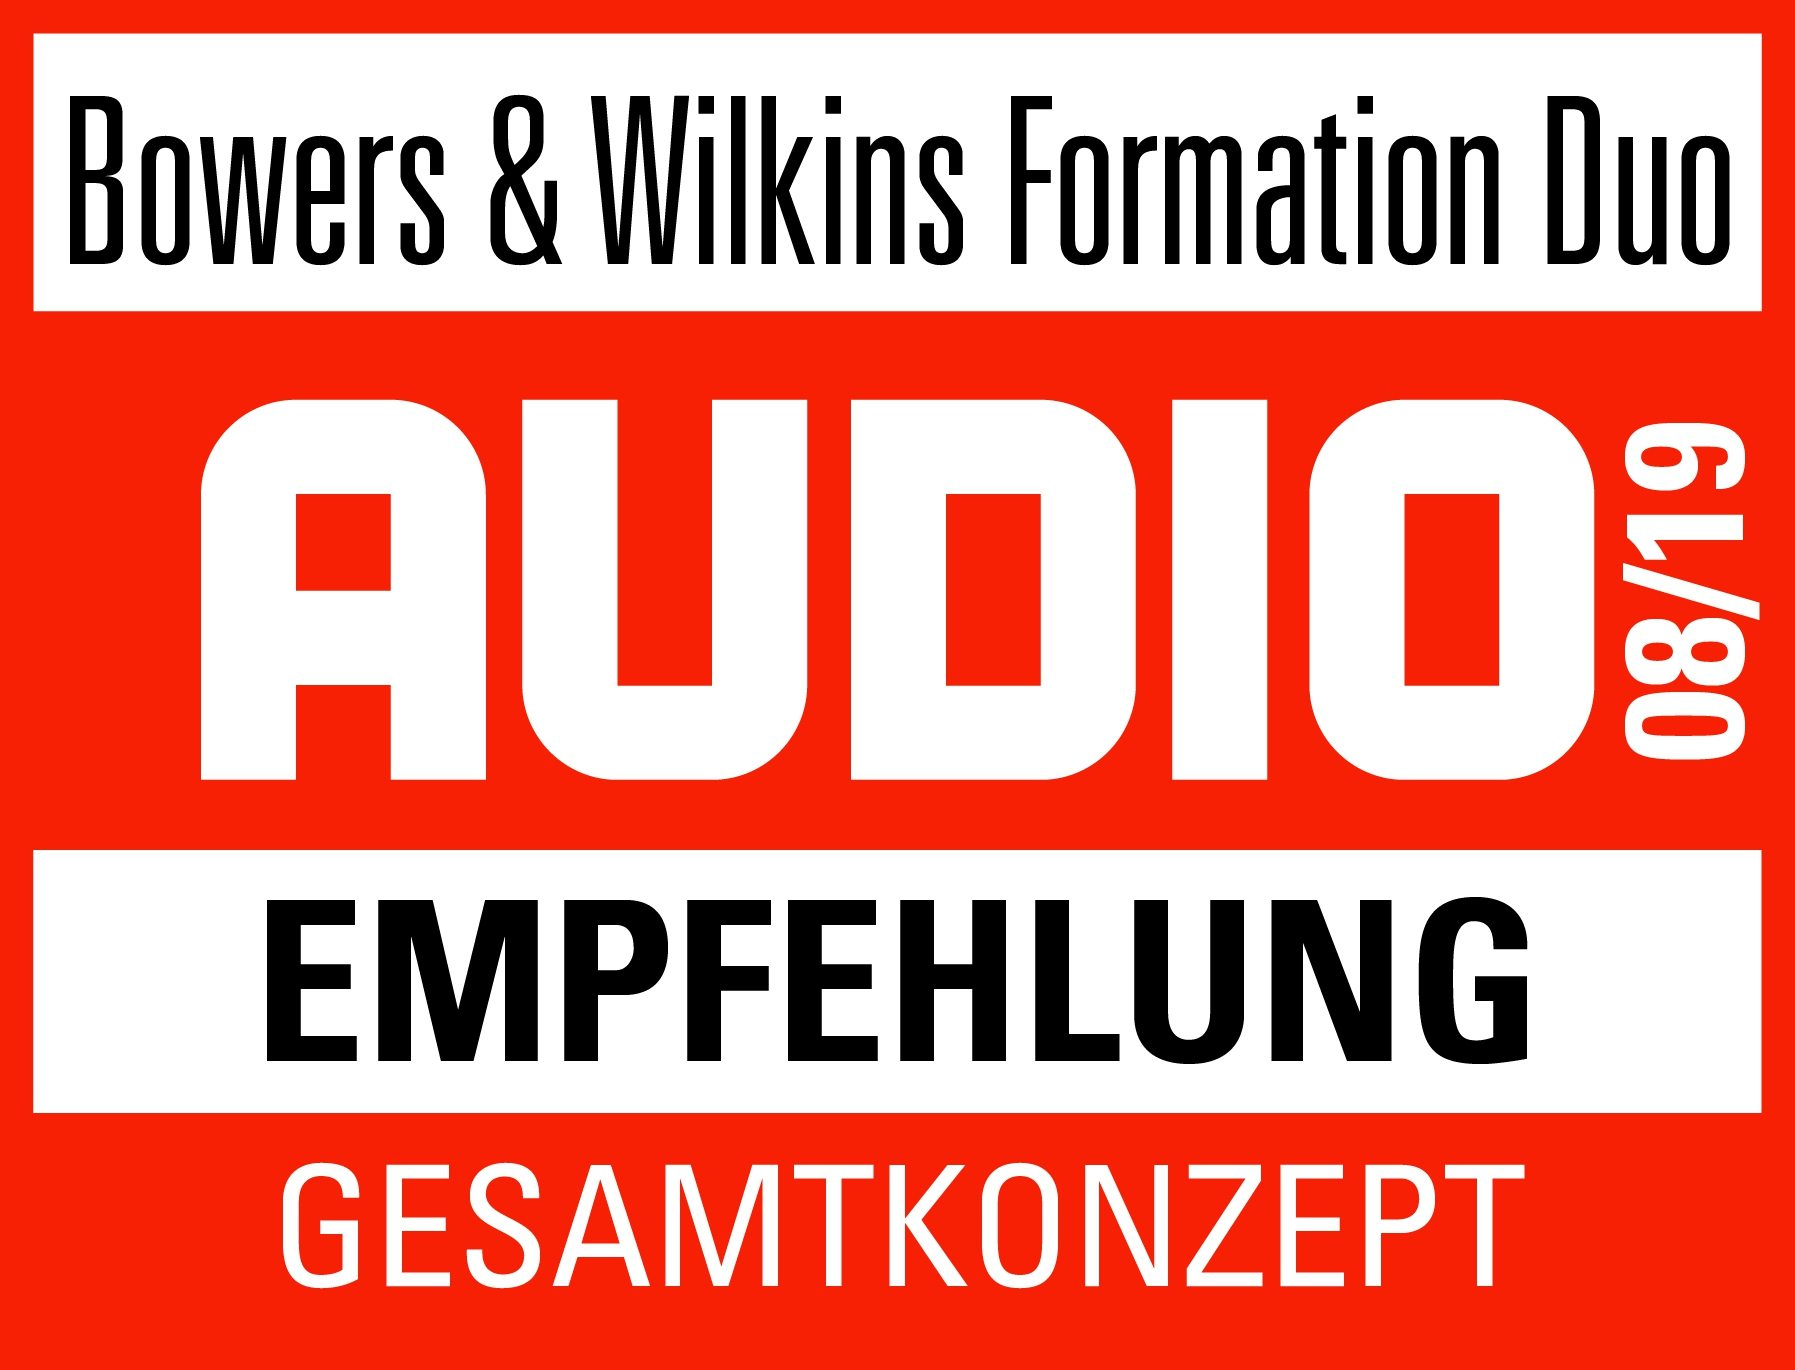 Bowers & Wilkins Formation Duo Awards